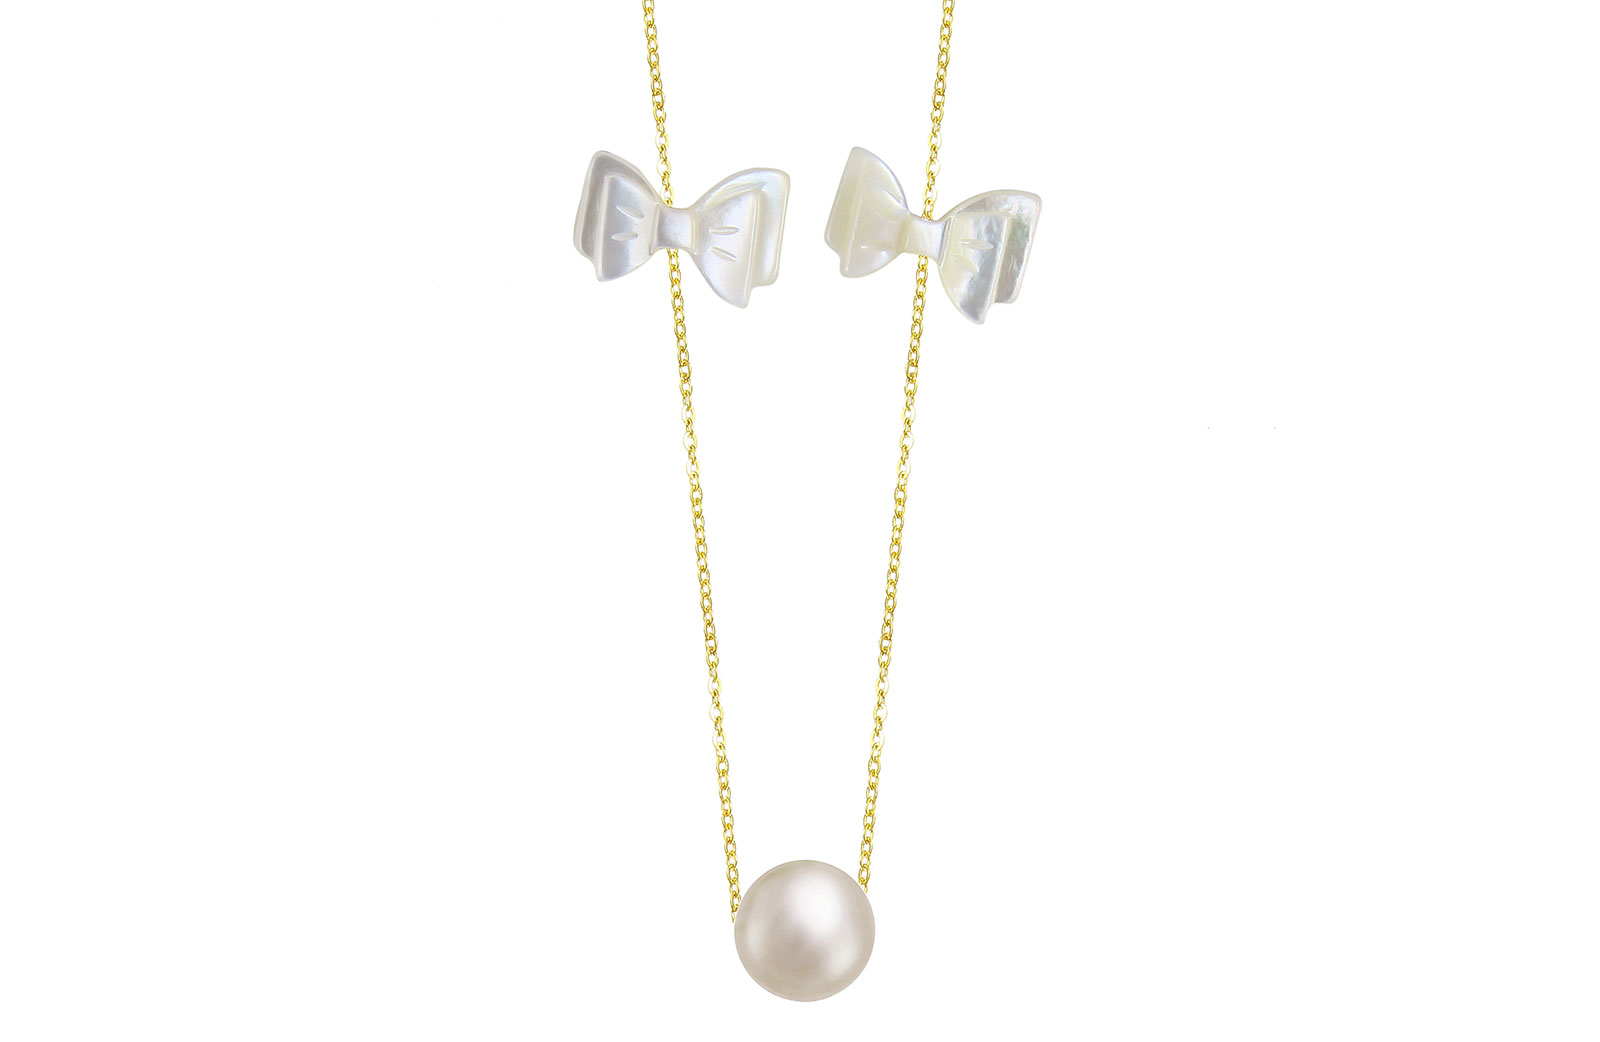 VP Jewels 18K Solid Gold Simple 7mm White Pearl with 2 Mother of Pearl Bow Pendant Necklace